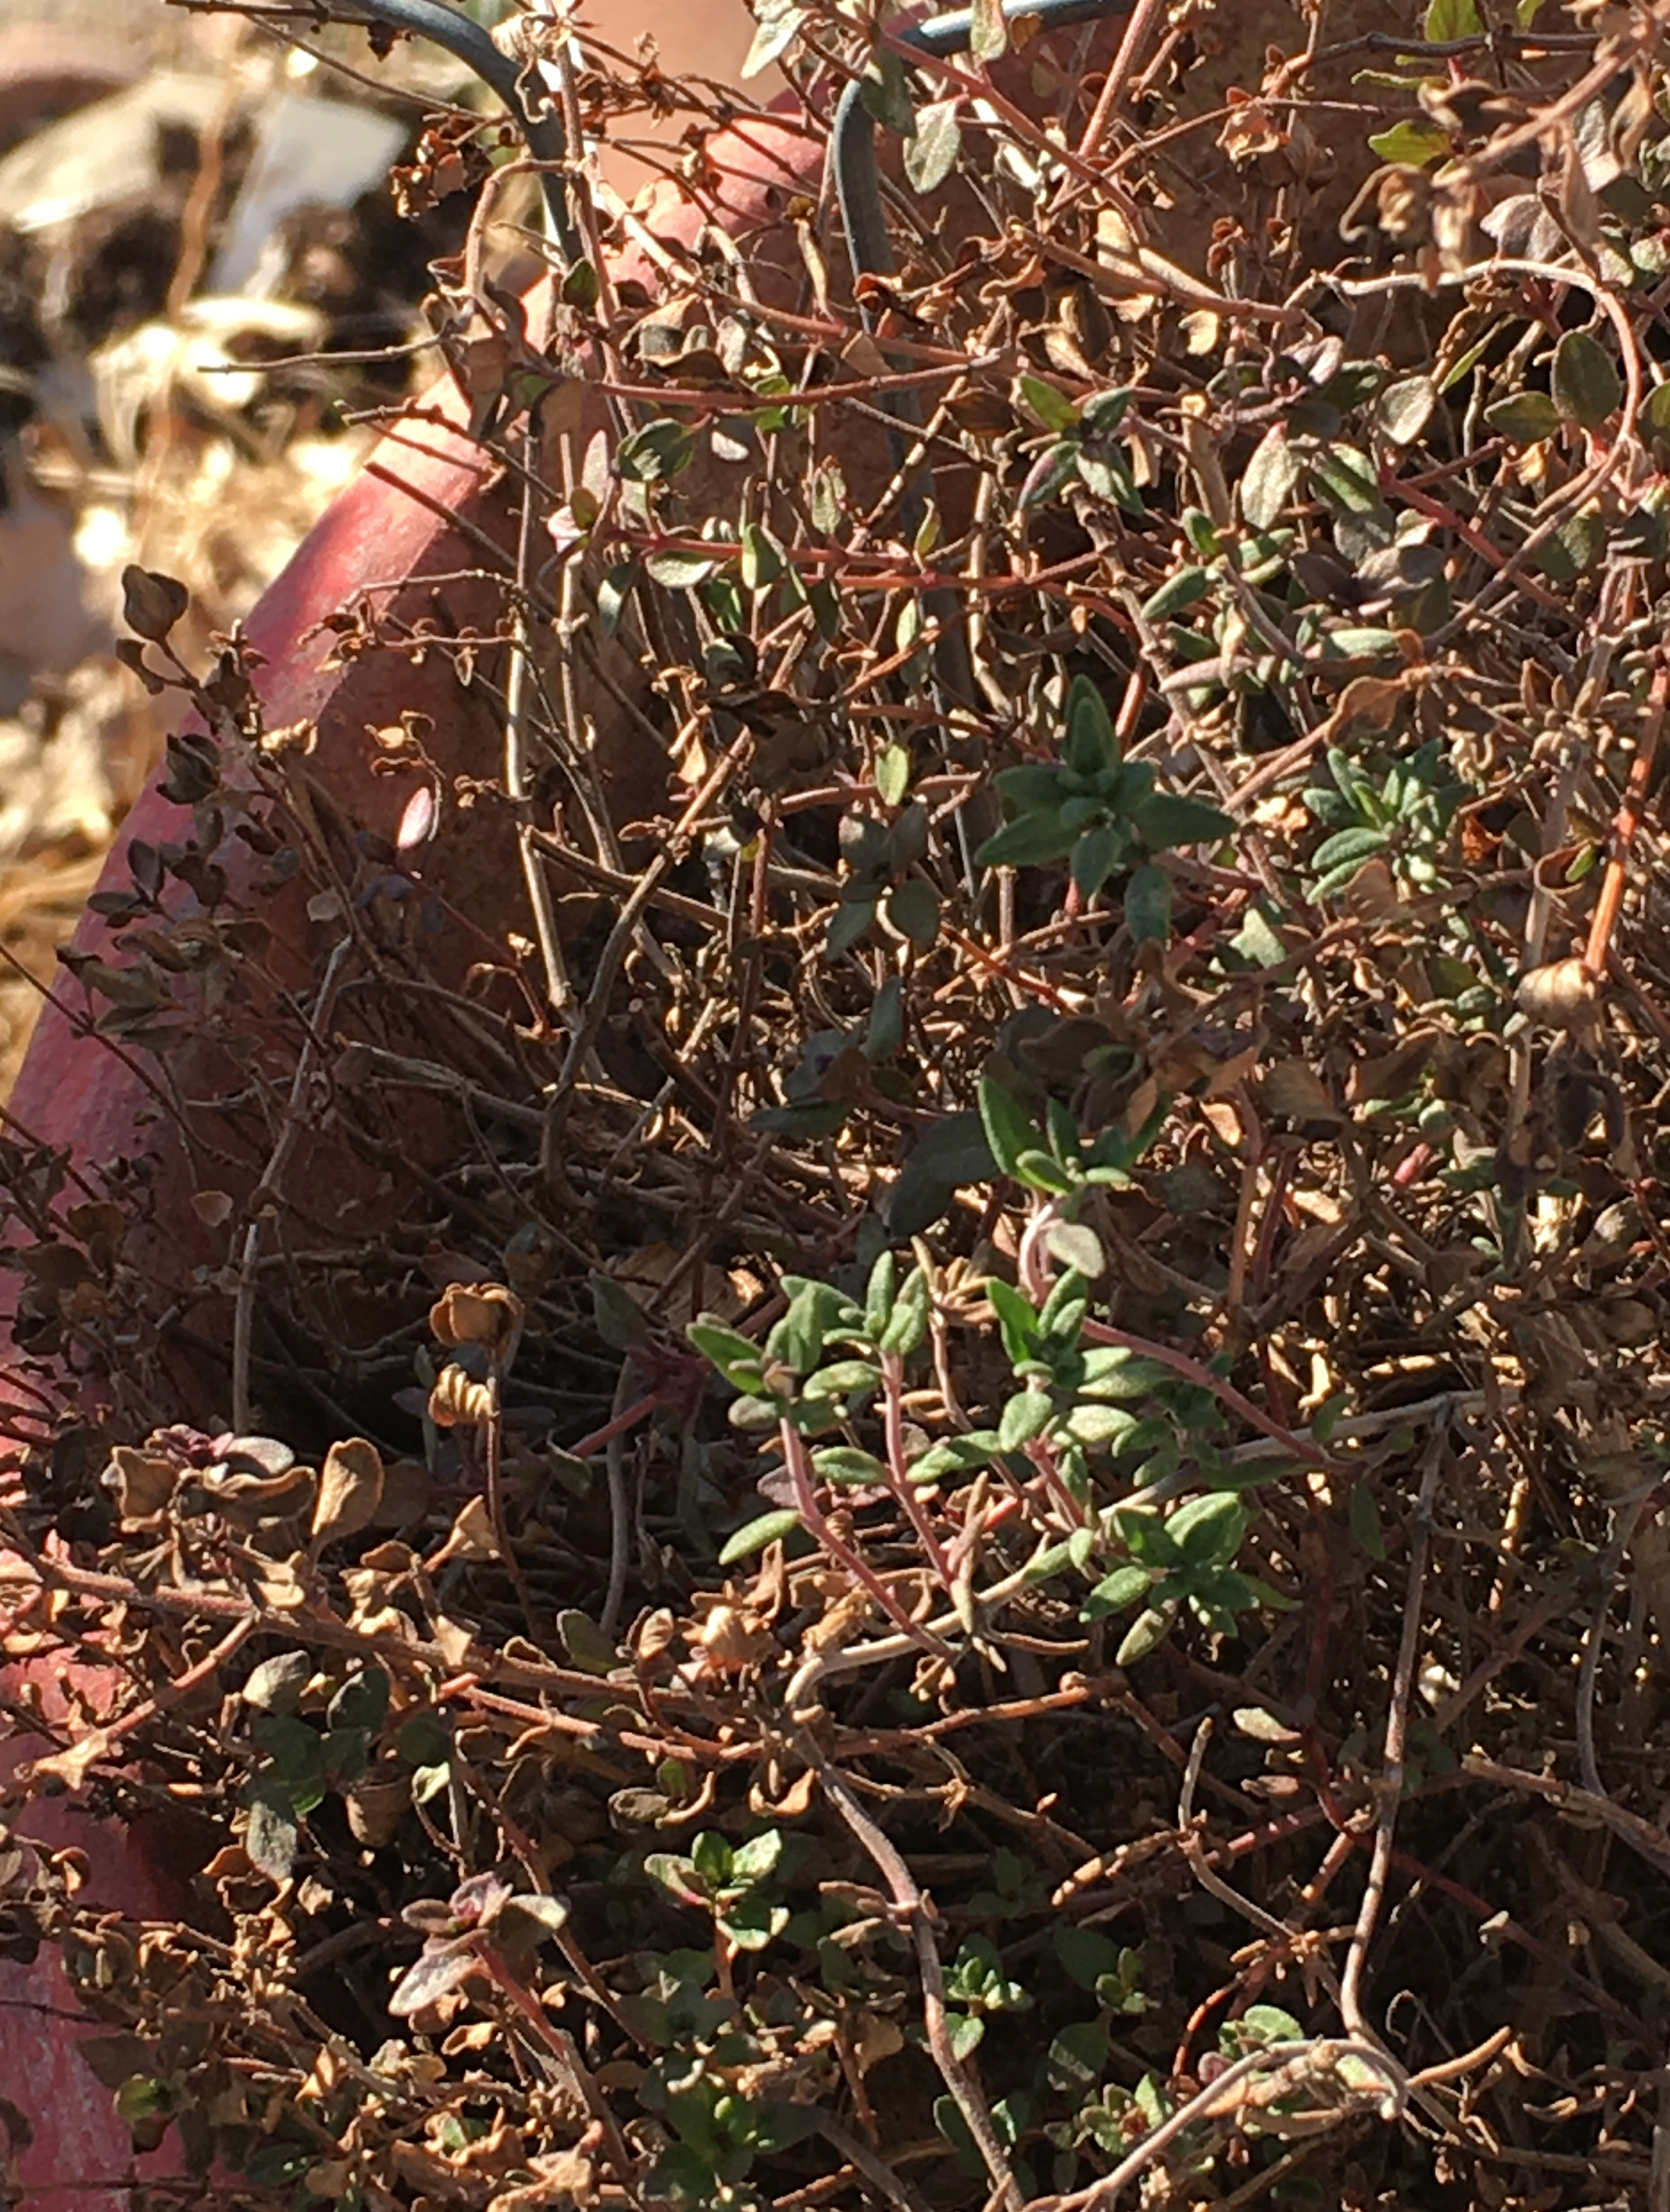 lemon thyme wintered over